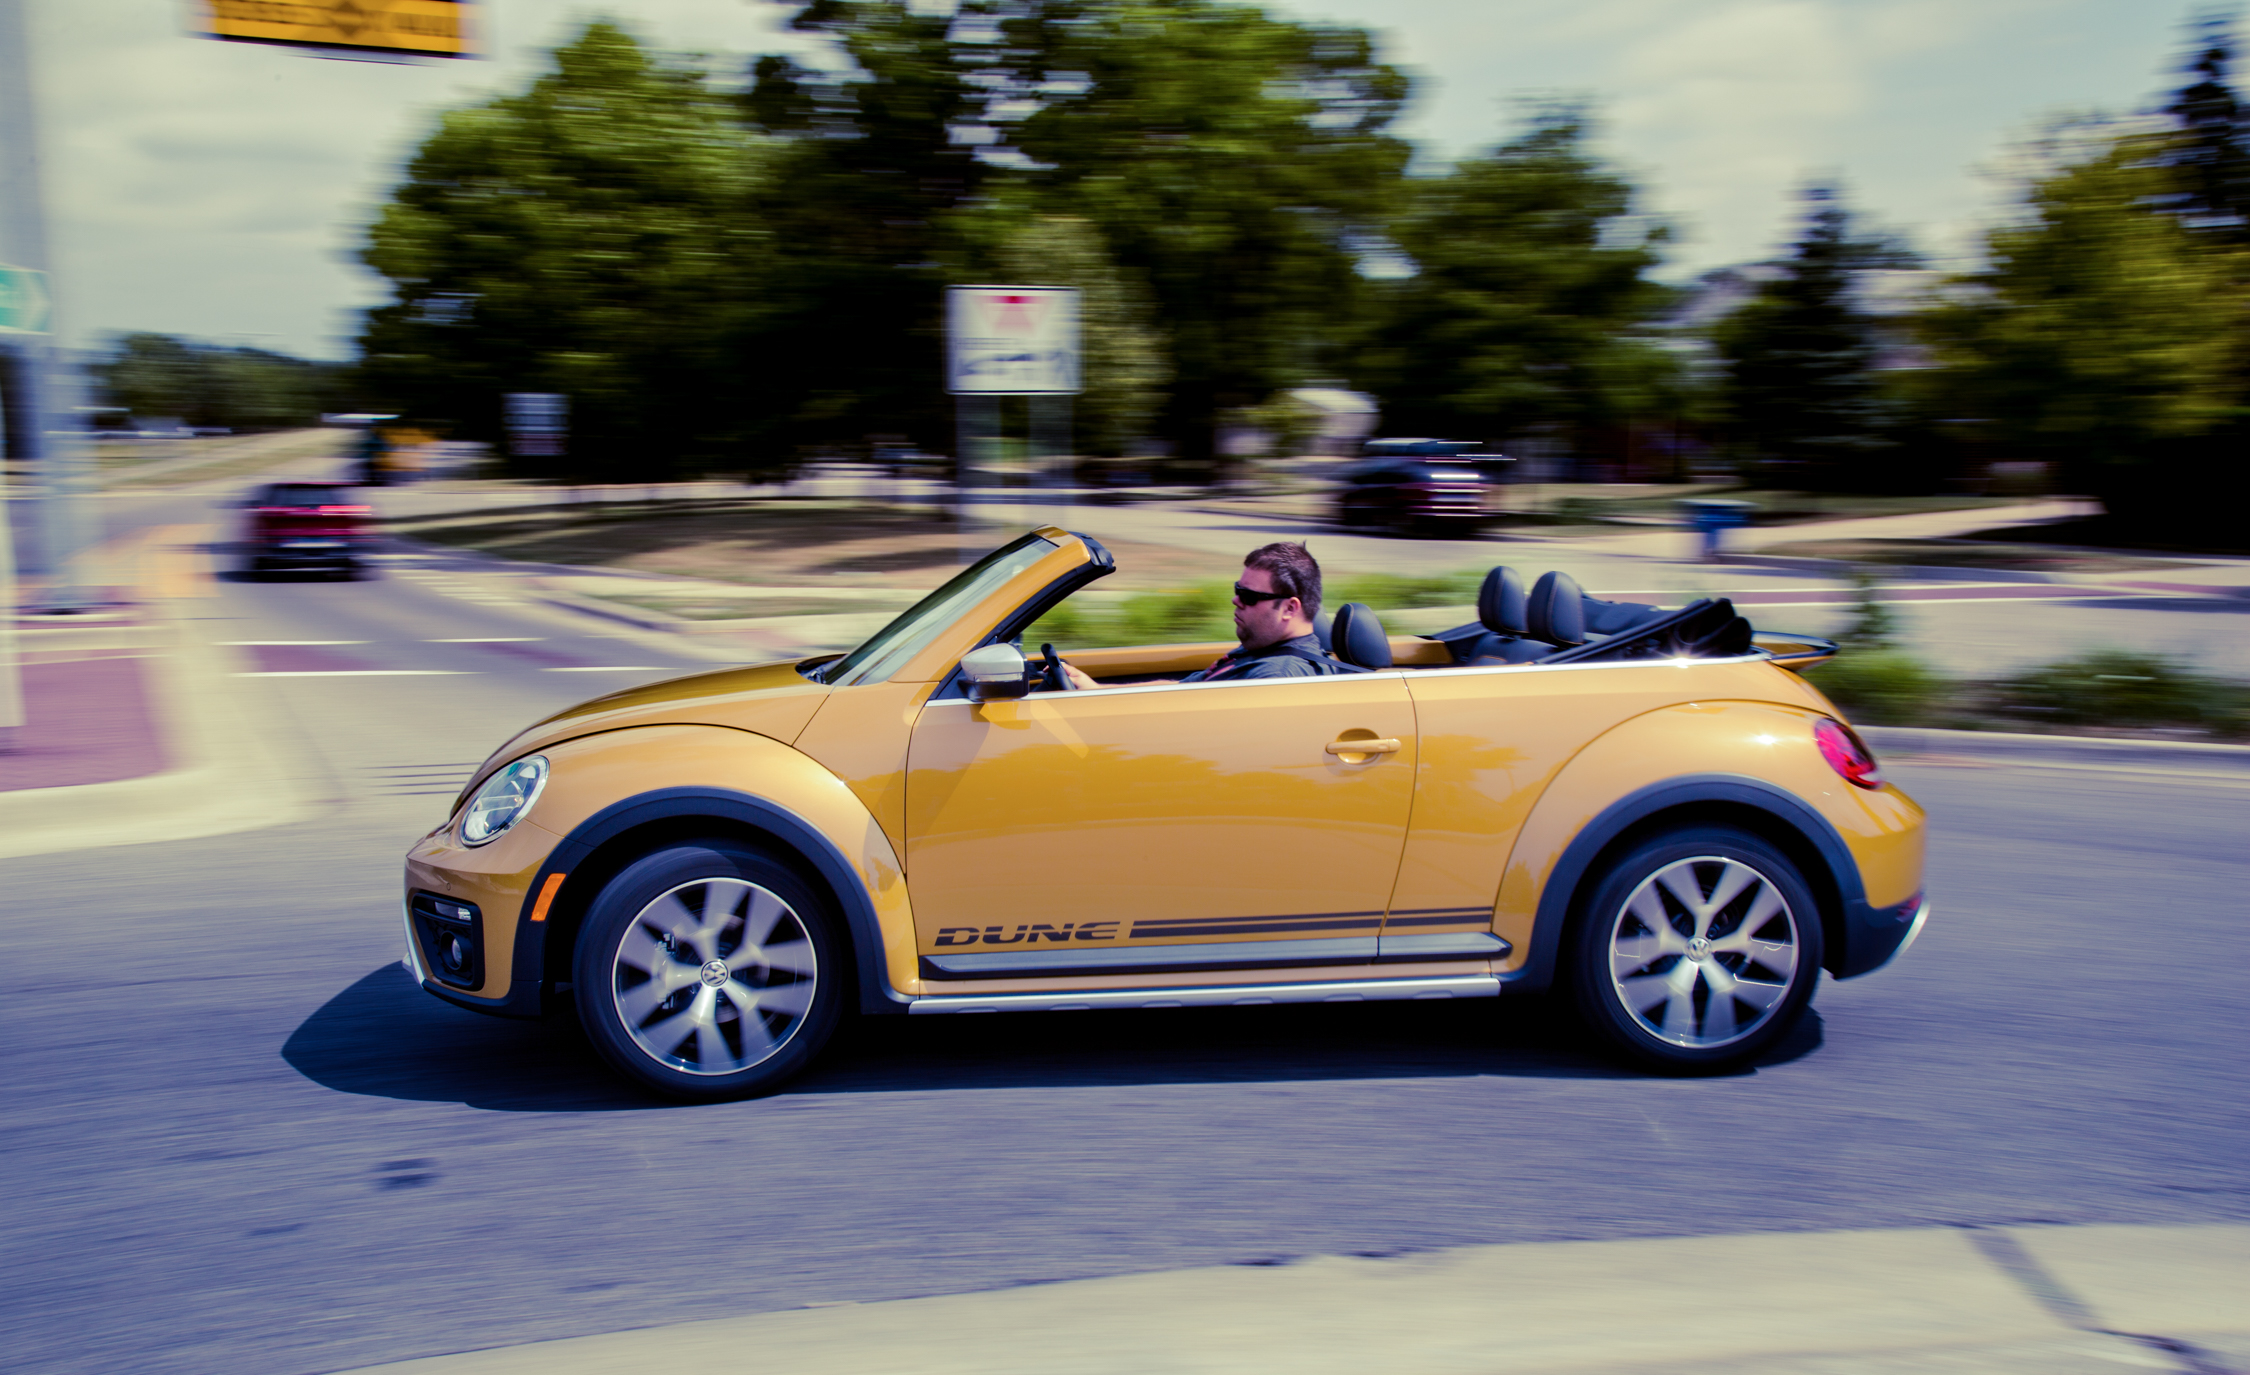 2017 Volkswagen Beetle Dune Convertible Test Drive Side View (View 2 of 19)